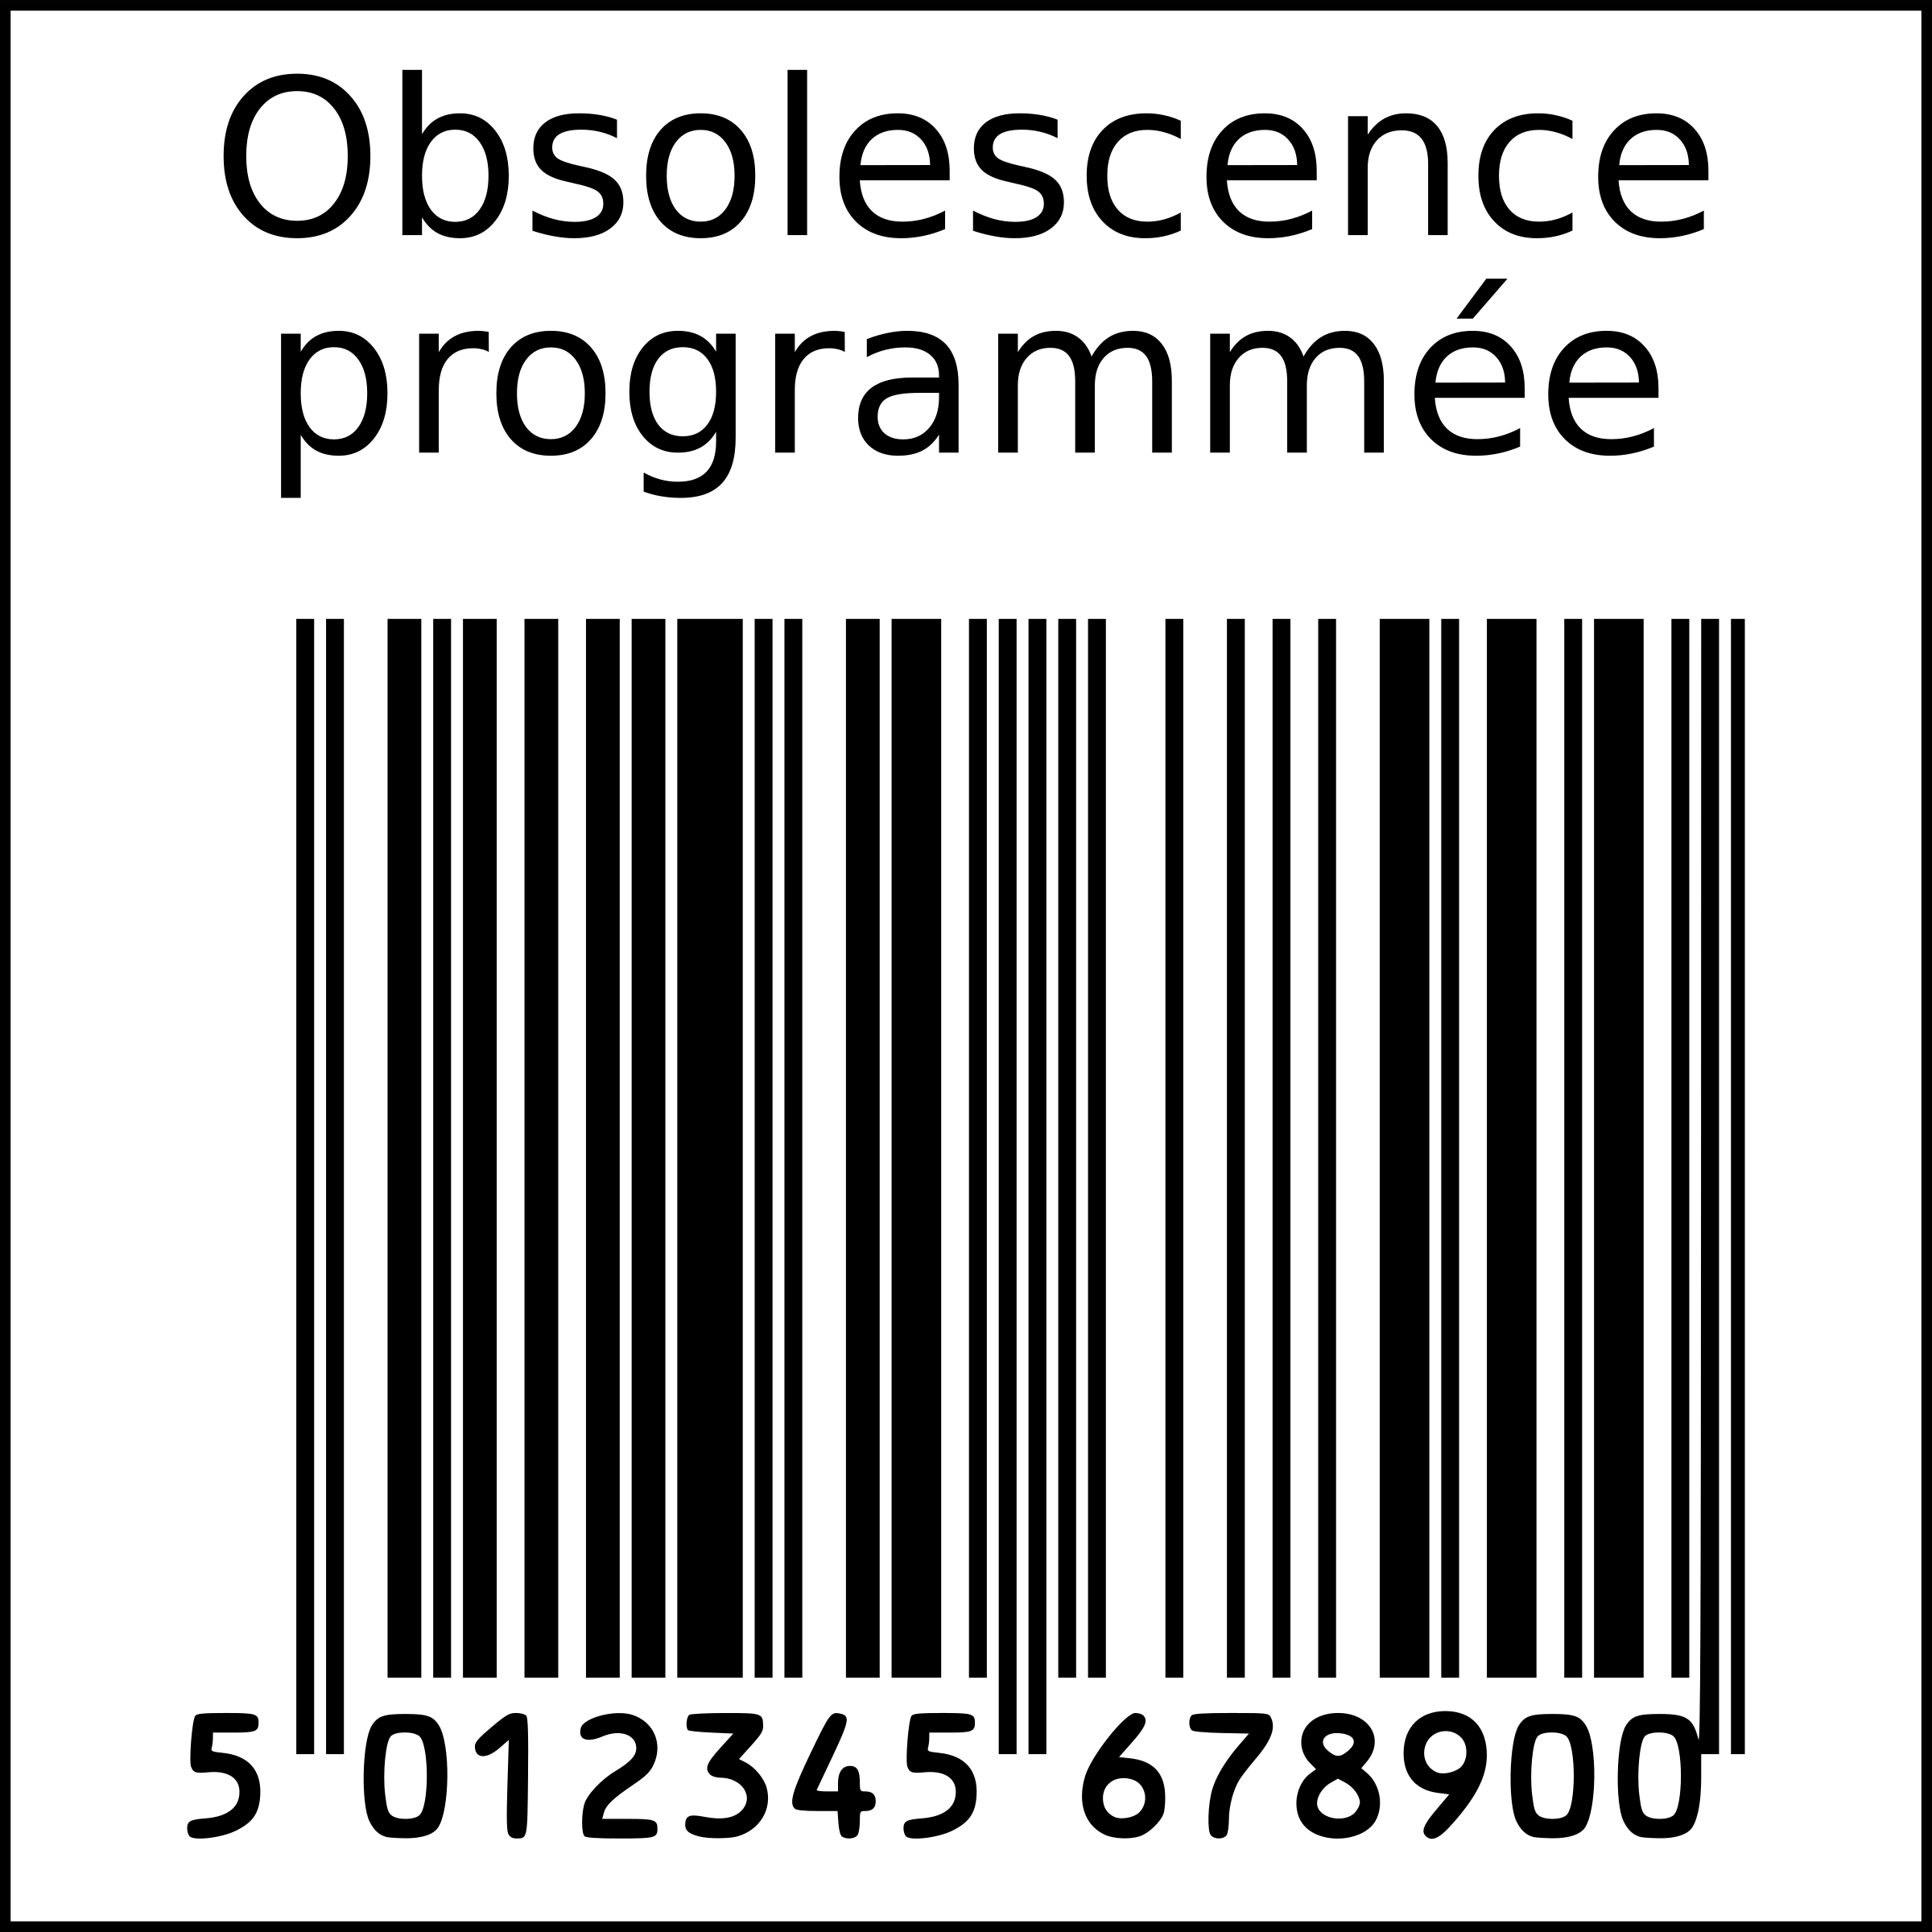 Planned obsolescence barcode in squarre (French) by sodruls